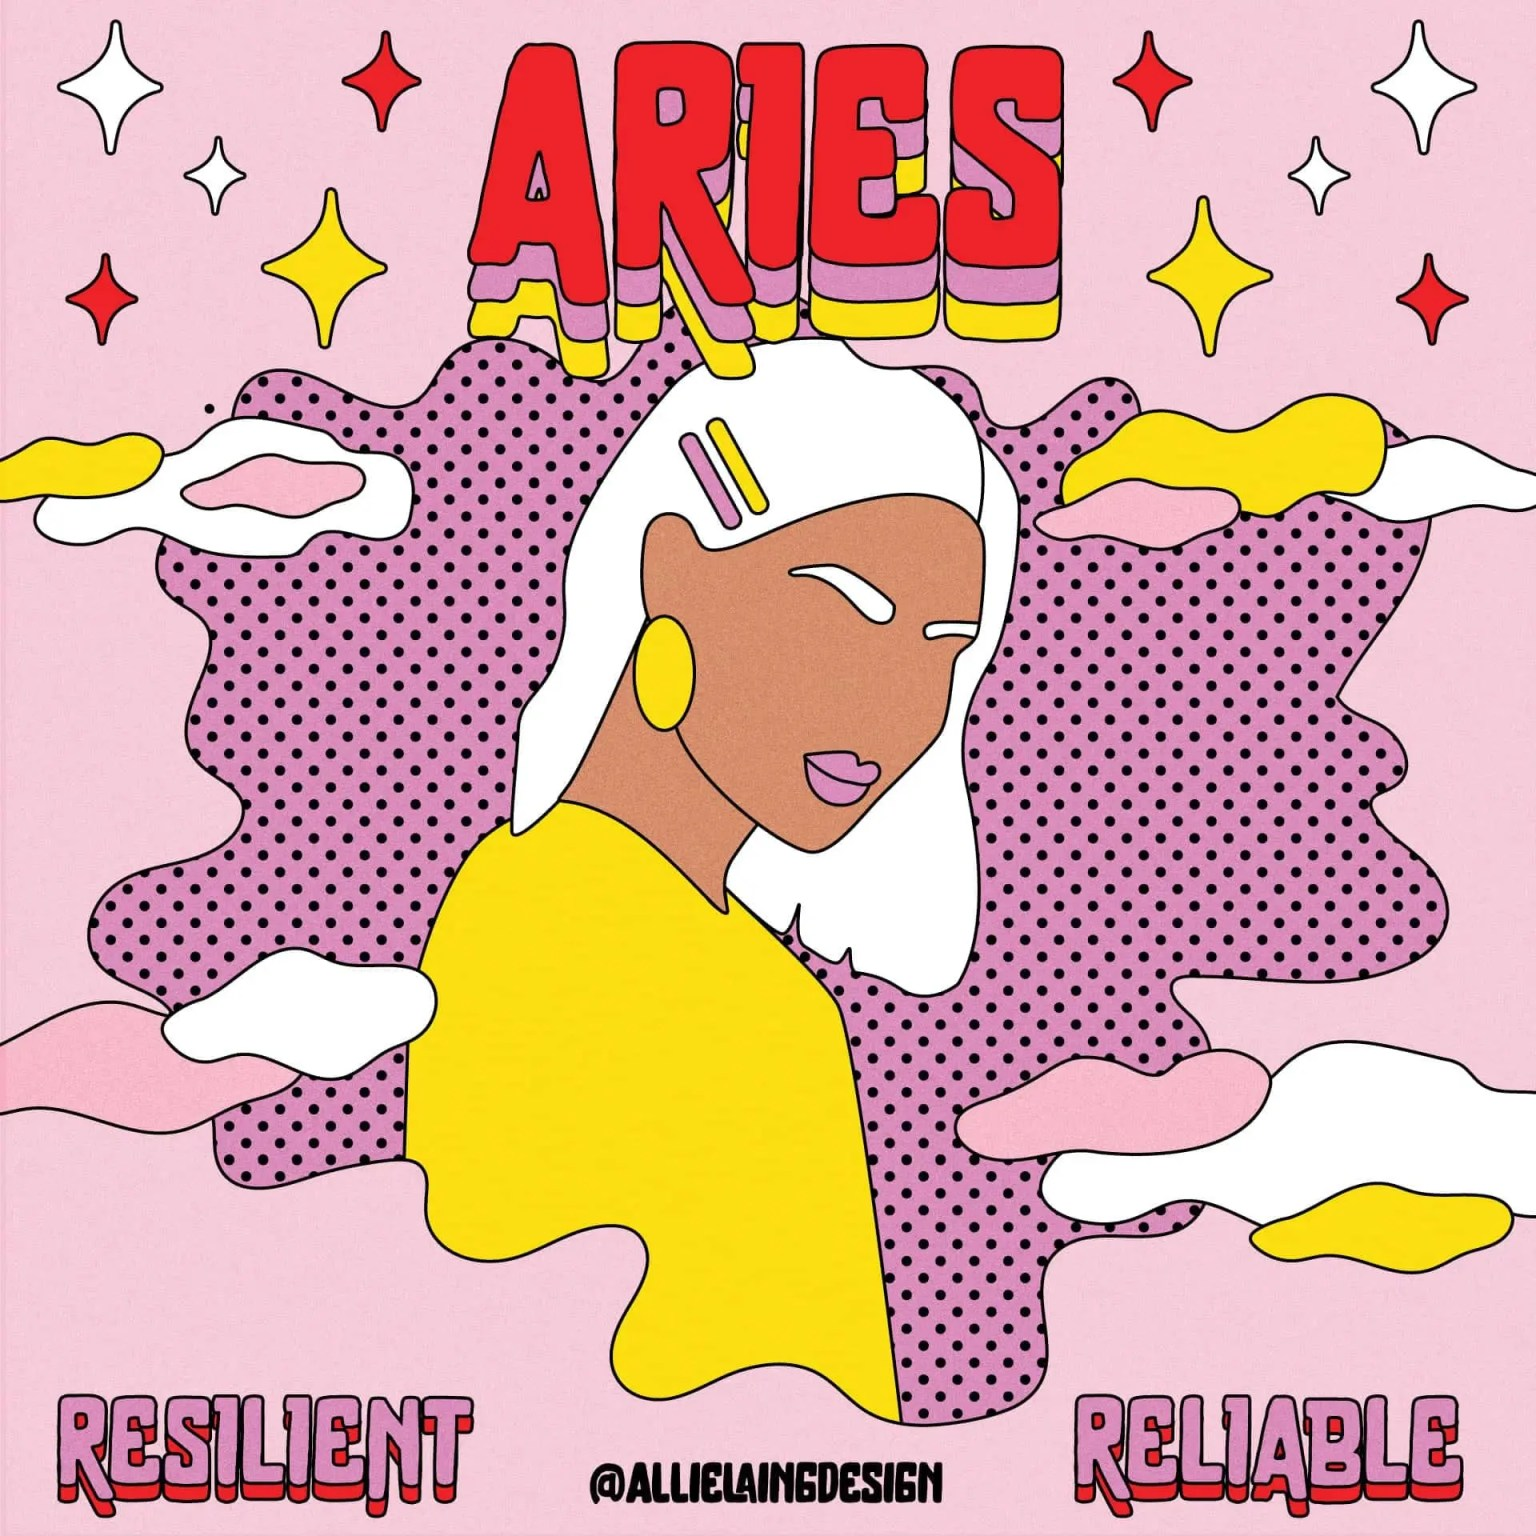 aries astrology sign stickers